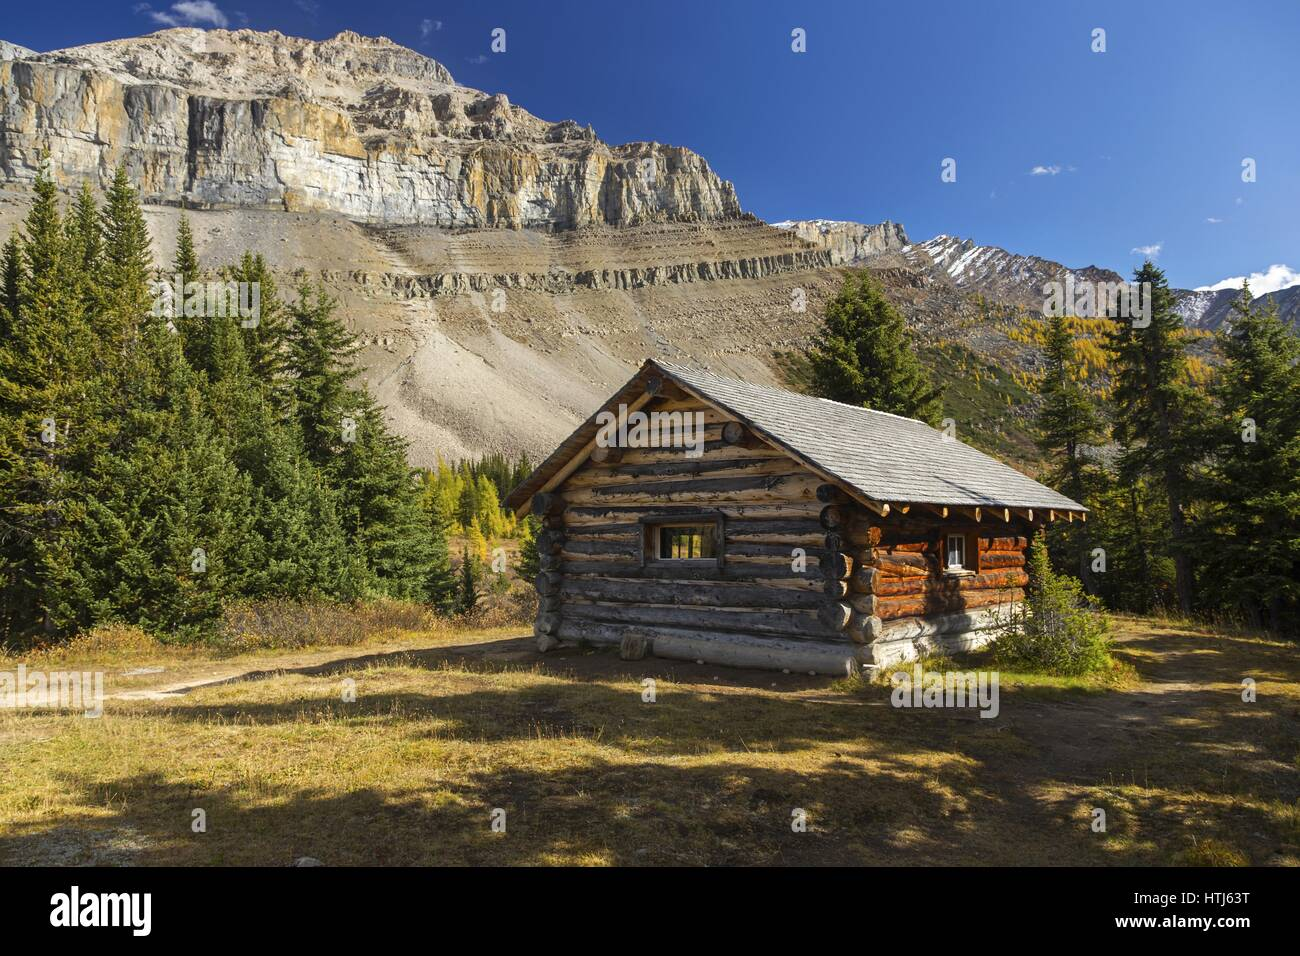 Rustic Log Cabin called Halfway Hut near Lake Louise in Canadian Rocky Mountains - Stock Image